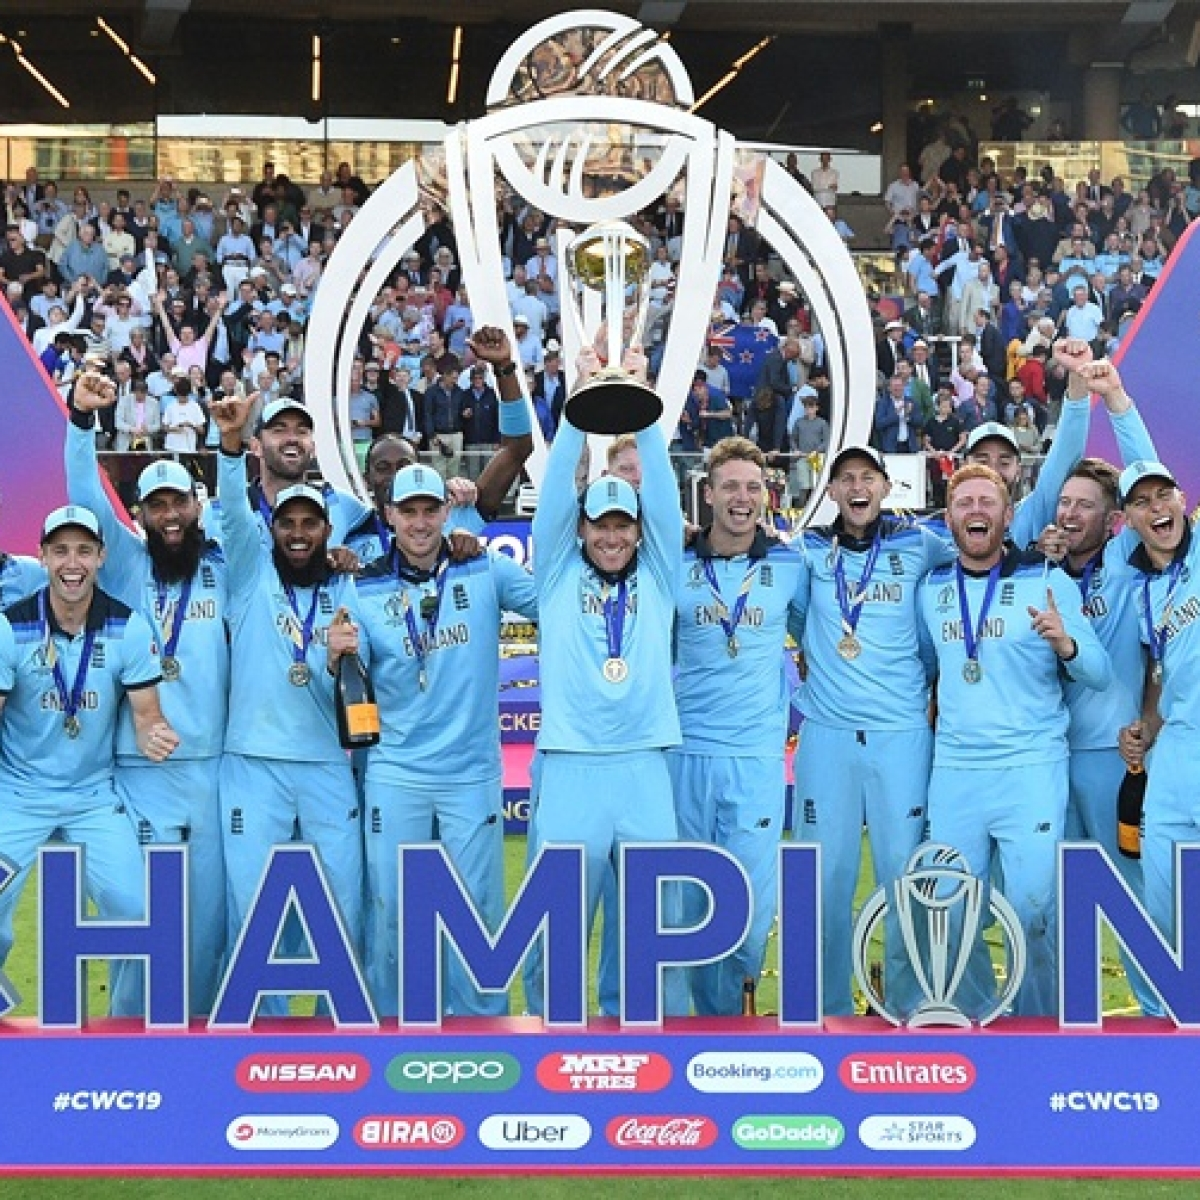 World Cup 2019 Final: How did England win despite scores were tied after Super Over?